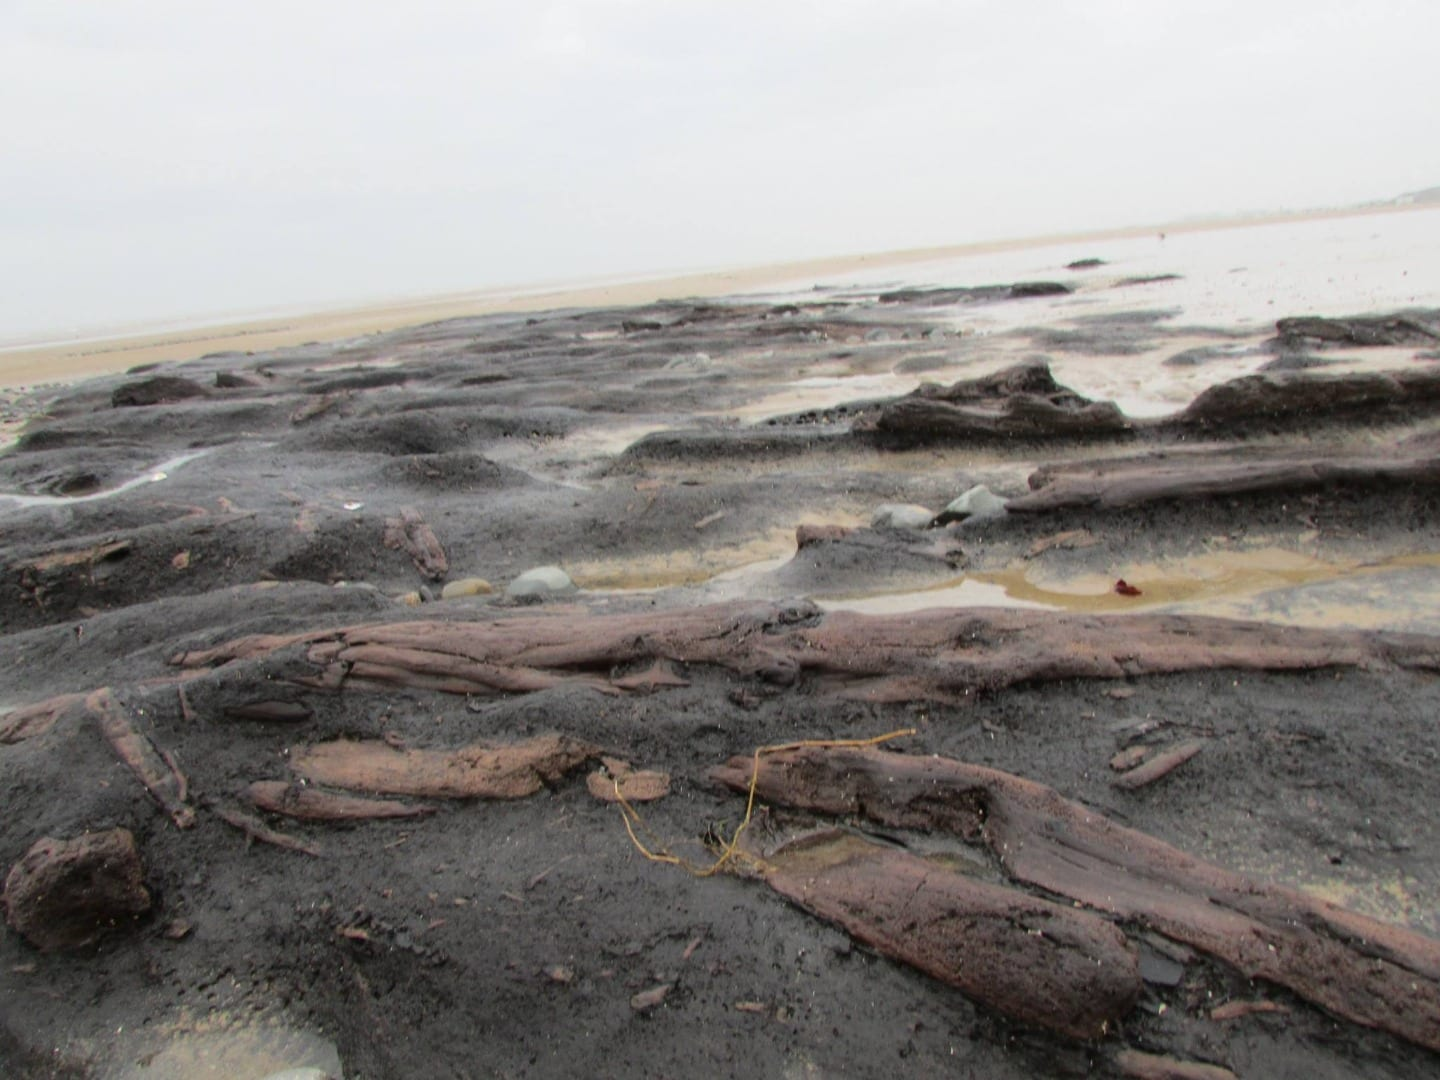 tree stumps from the petrified forest on Cleveleys beach, photo: Alison Wilkinson